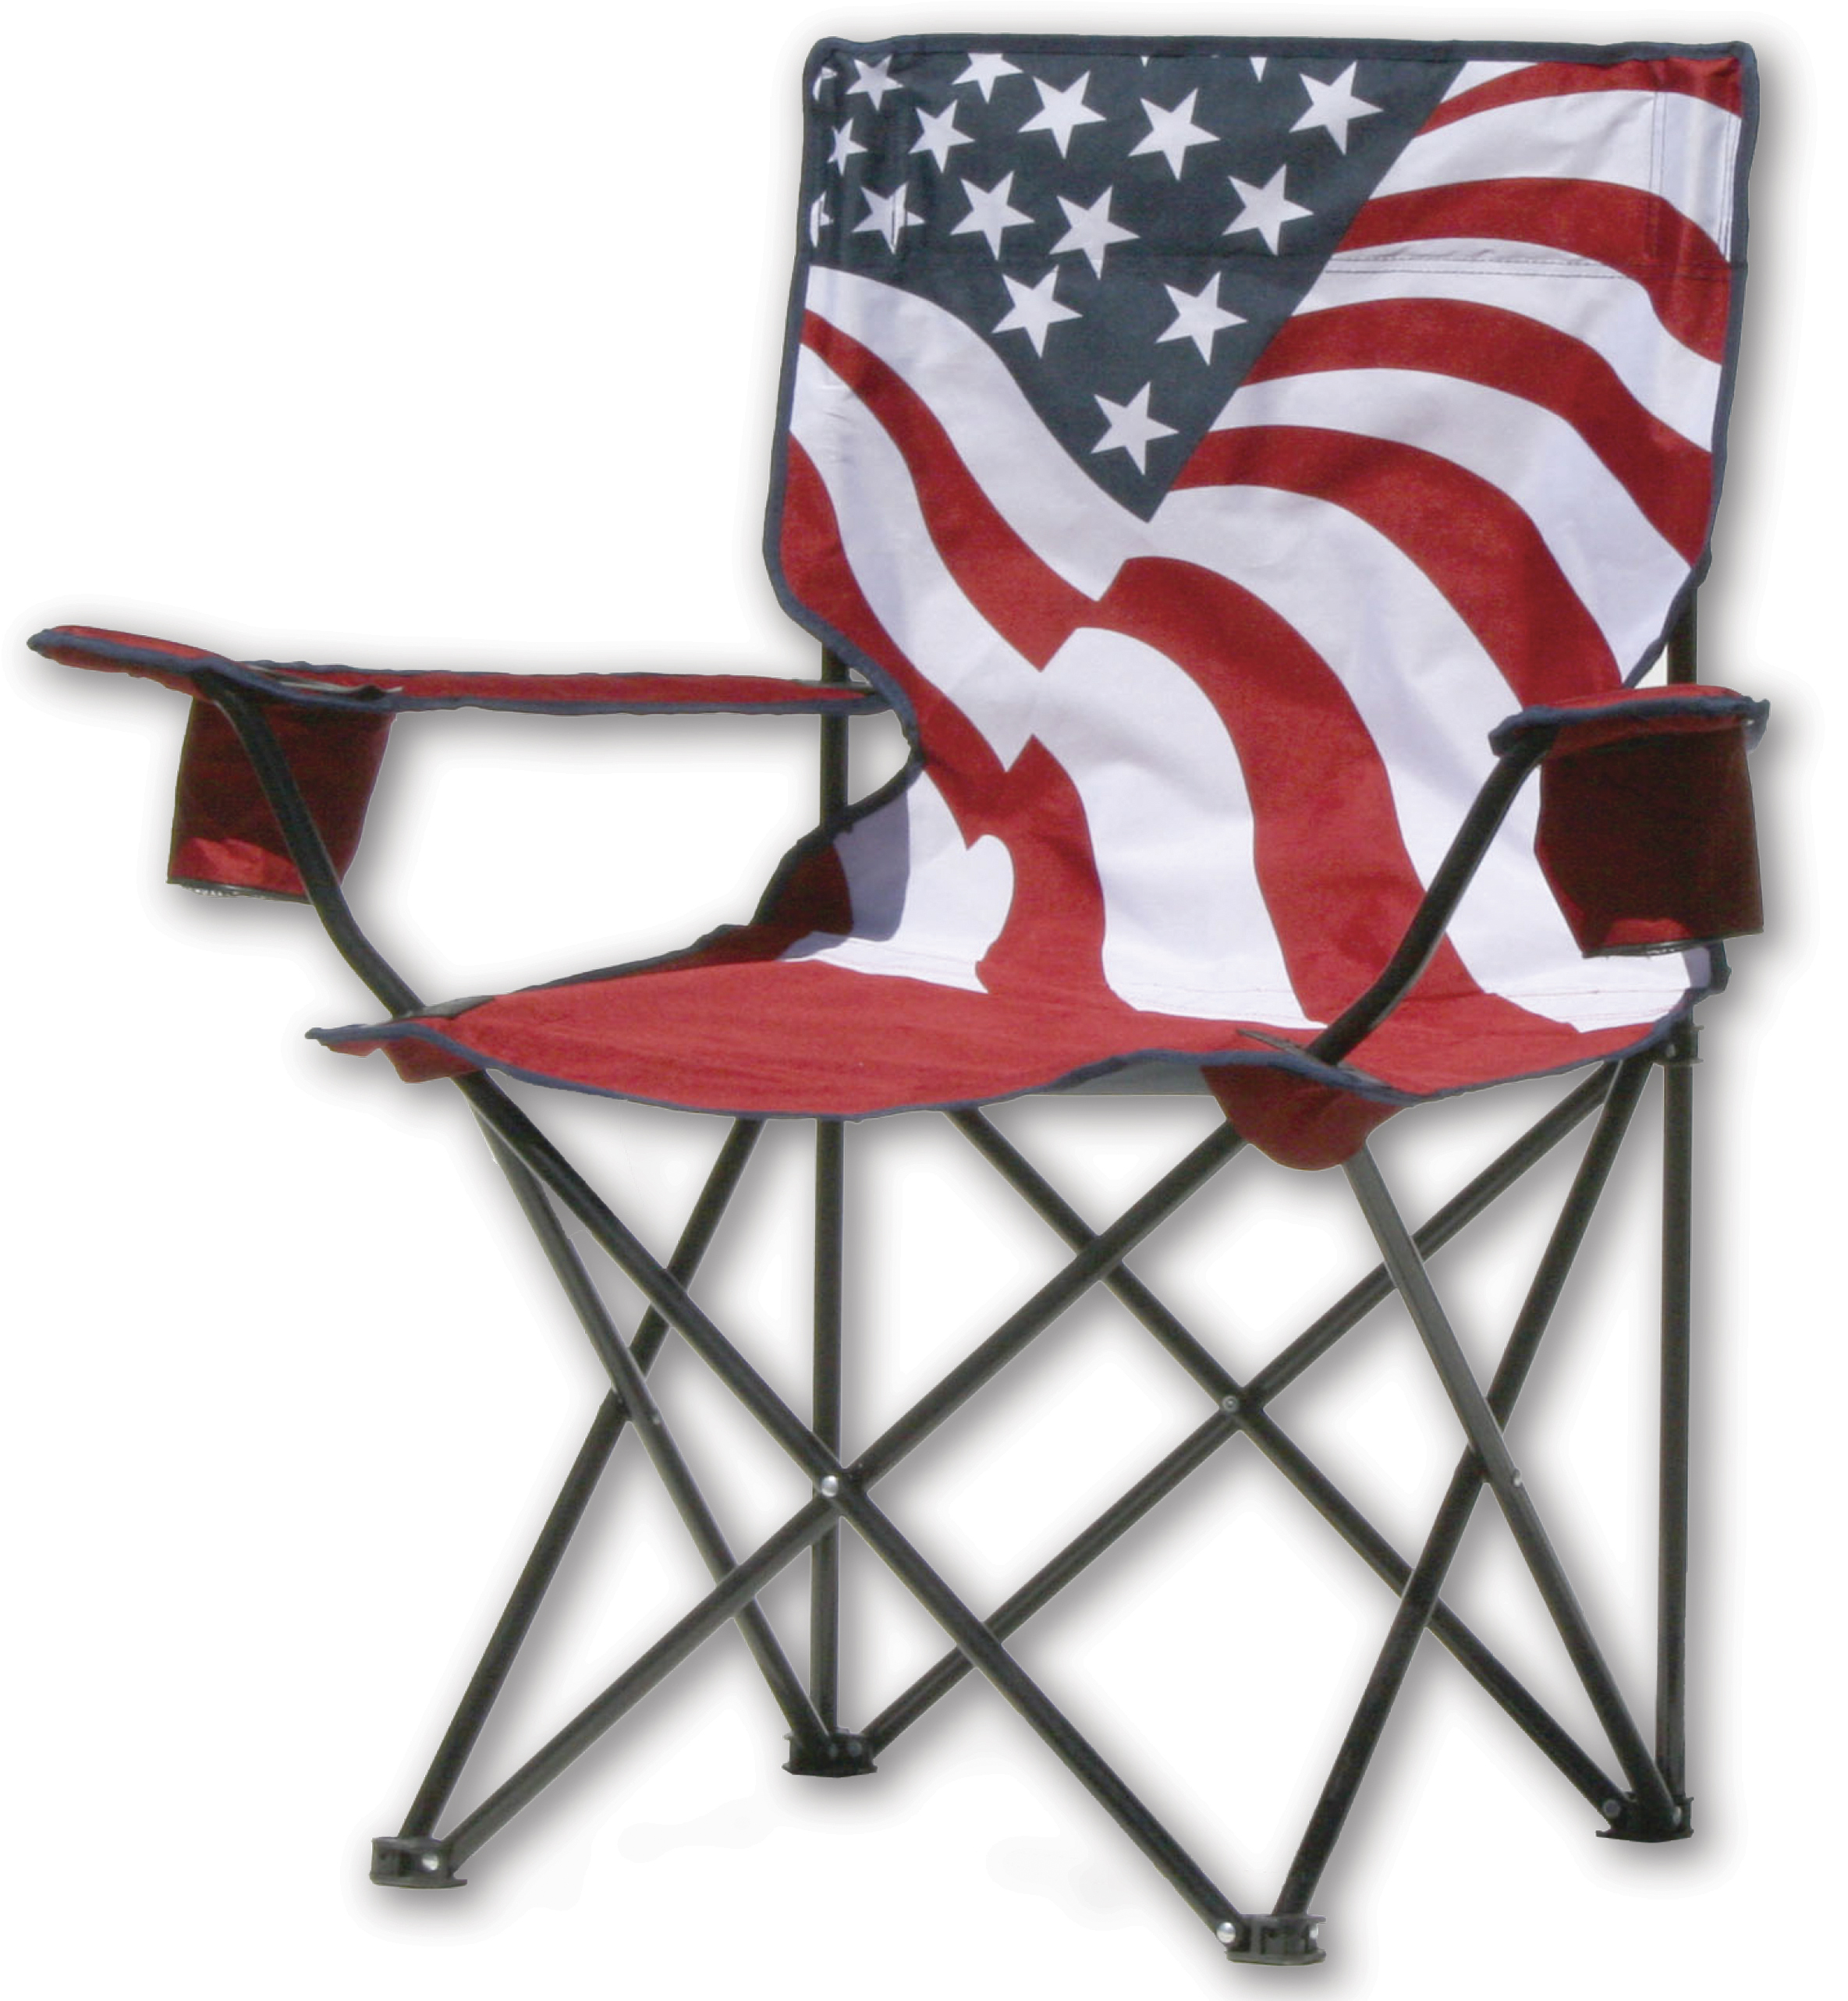 Quik Chair Quik Chair Folding Quad Chair - American Flag Pattern